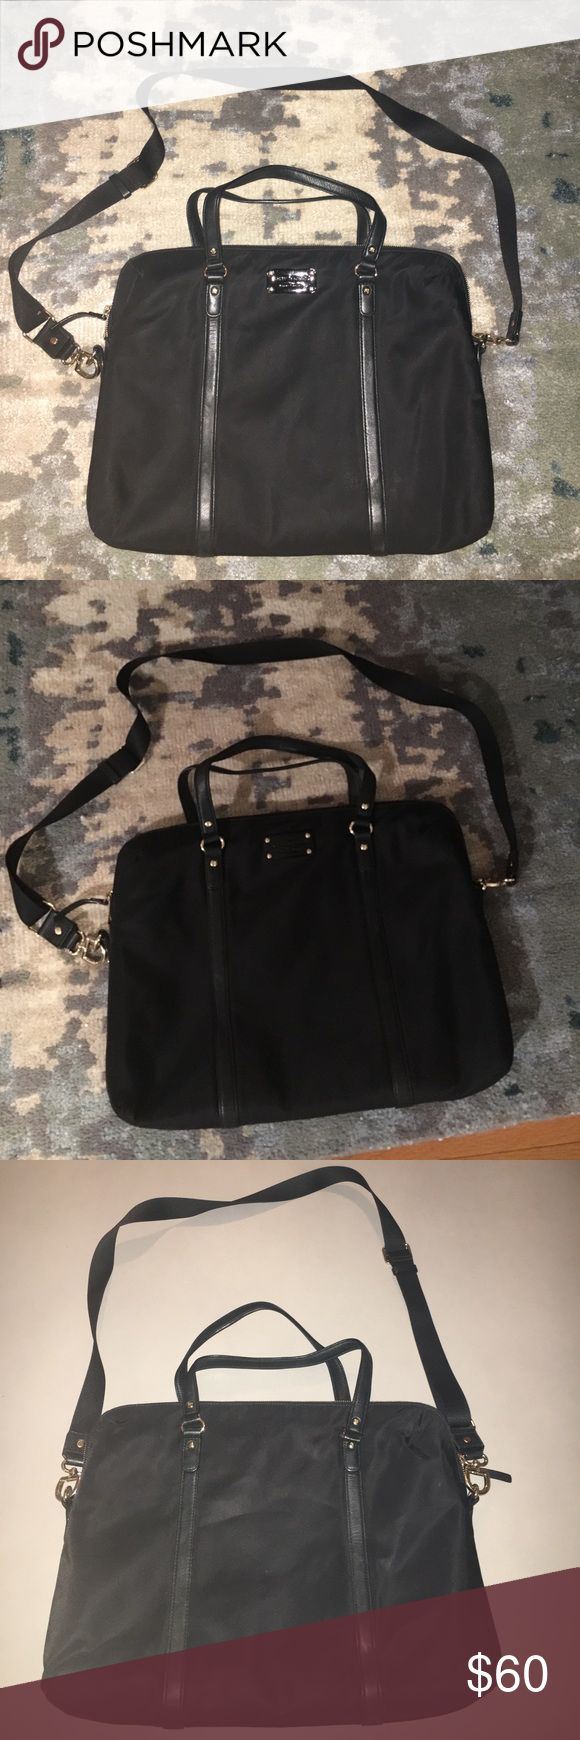 "Kate Spade brief and laptop case Black Kate Spade briefcase with compartment for computer. Includes and adjustable and detachable strap. Has compartment for for pens, pencils, and wallet. 16"" long x 12"" tall x 2"" deep. Has been used but in decent condition. You can tell there is some wear and tear. kate spade Bags Laptop Bags"